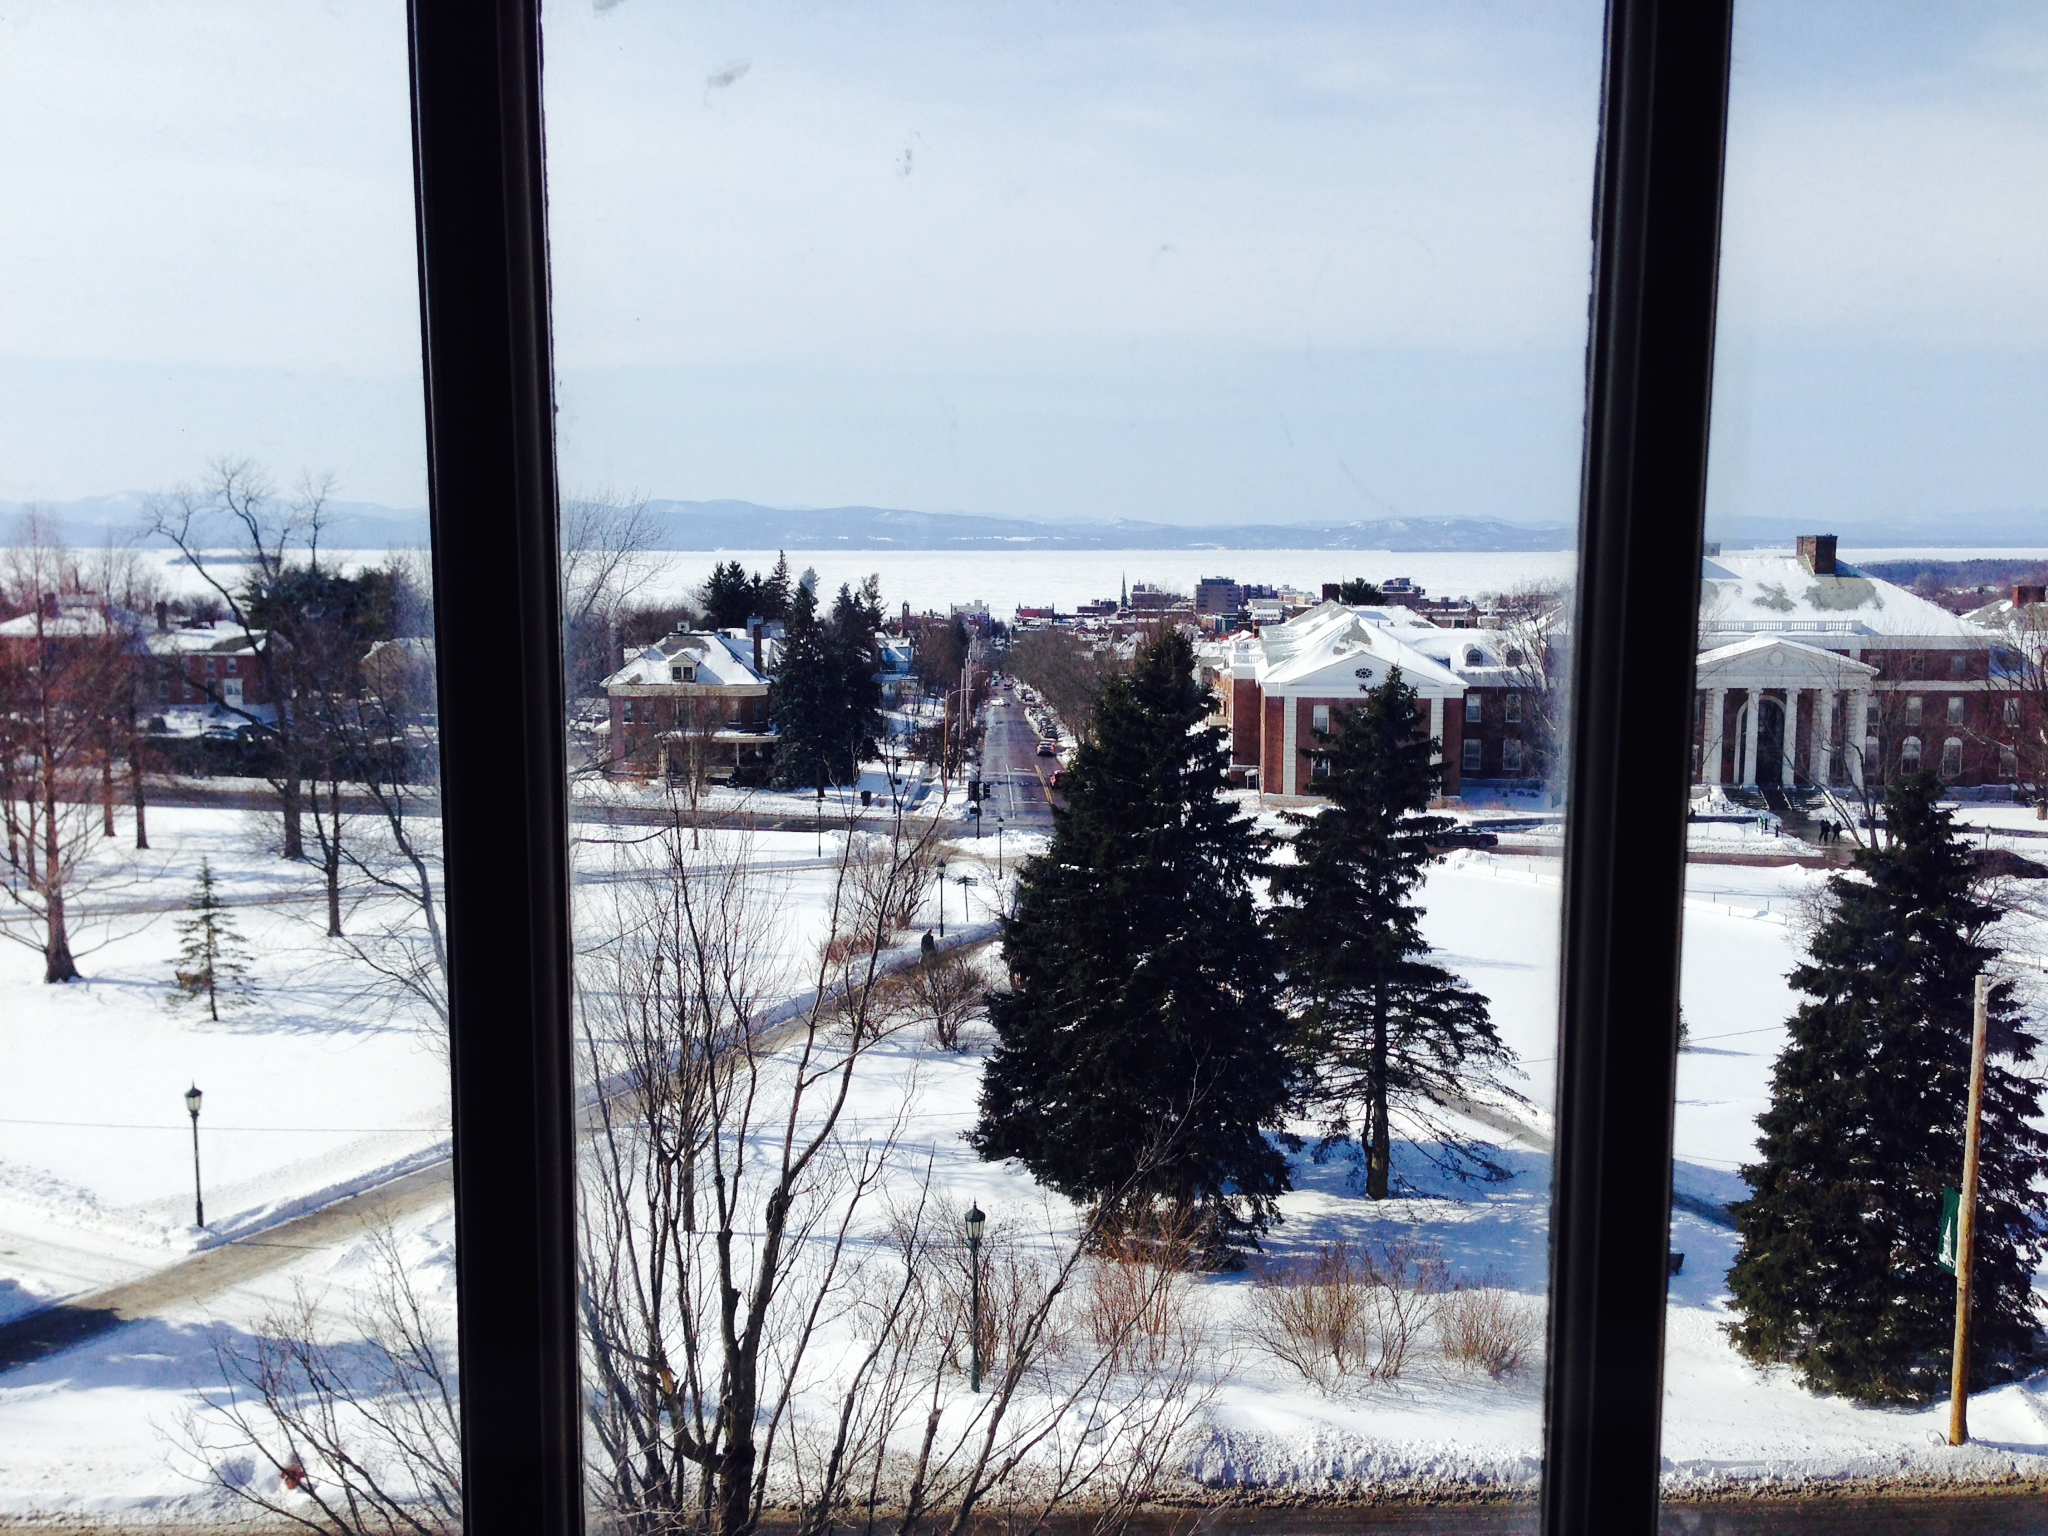 The UVM Campus sits aboveLake Champlain with the city of Burlington and the mountains in the distance. This conference room is on the top floor of the building where our daughter would take most of her classes...hmm, is it any wonder they took us here on the tour?